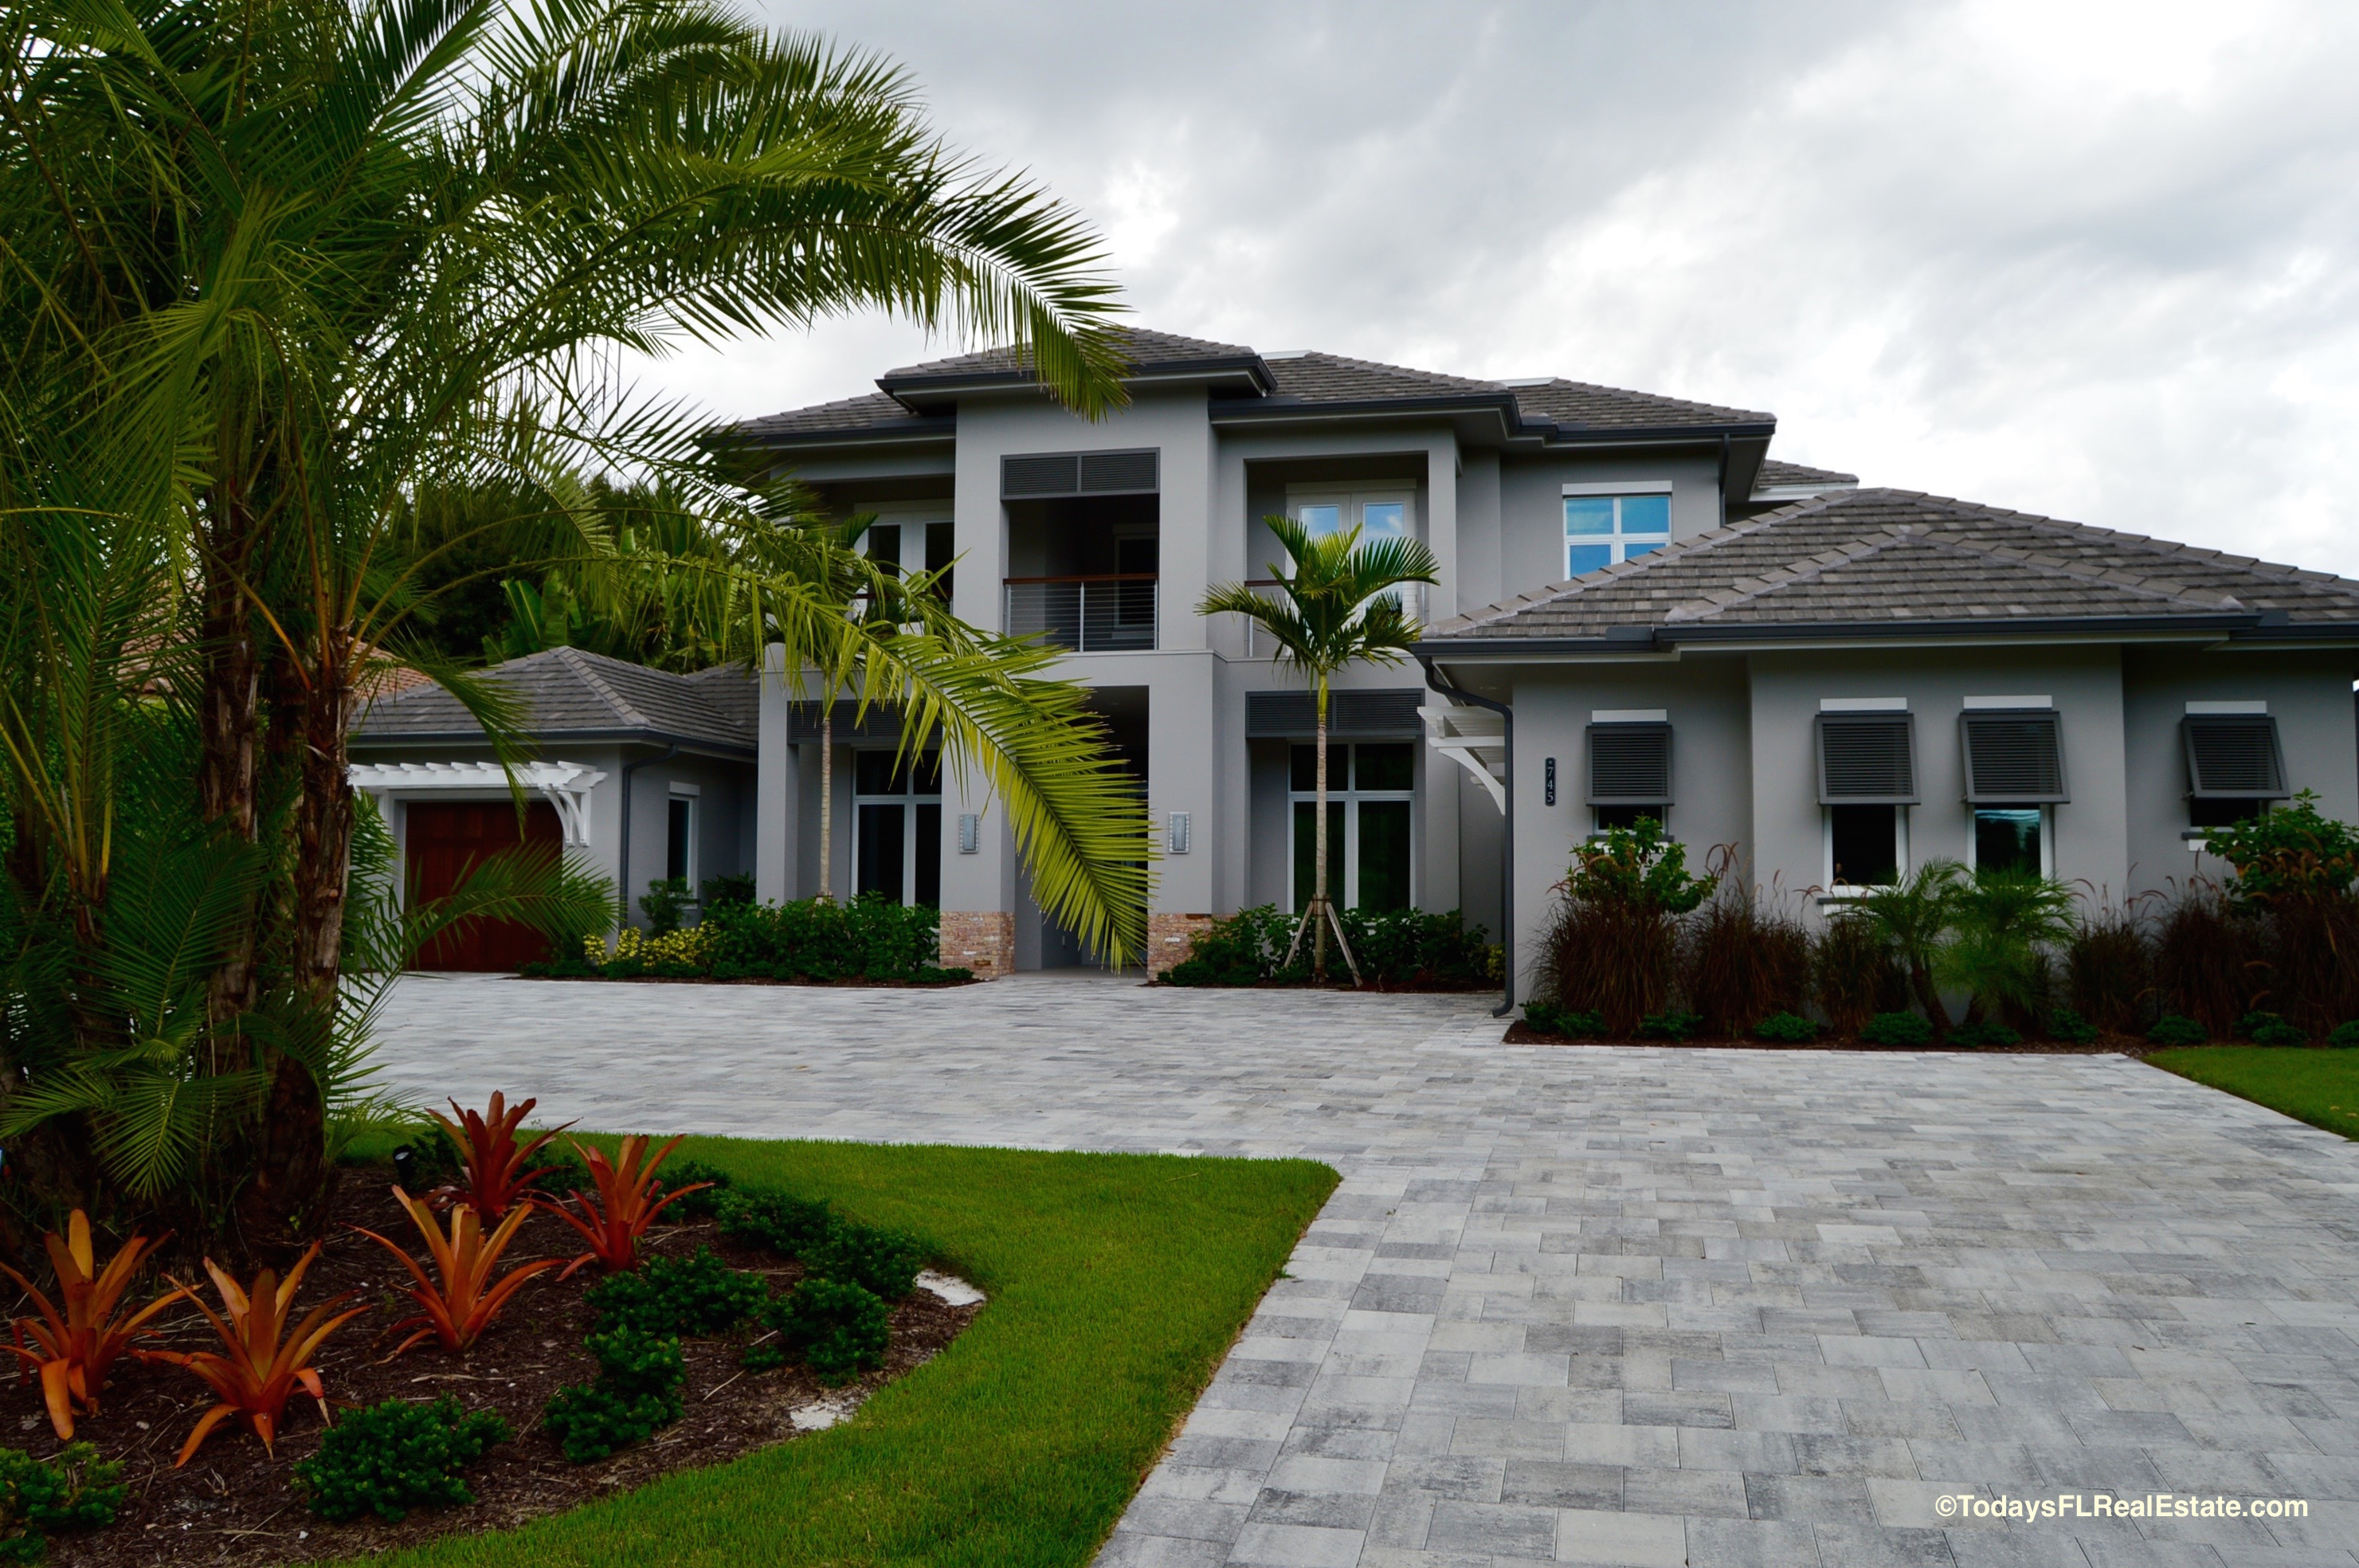 Southwest florida home values on the rise for Expensive homes in florida